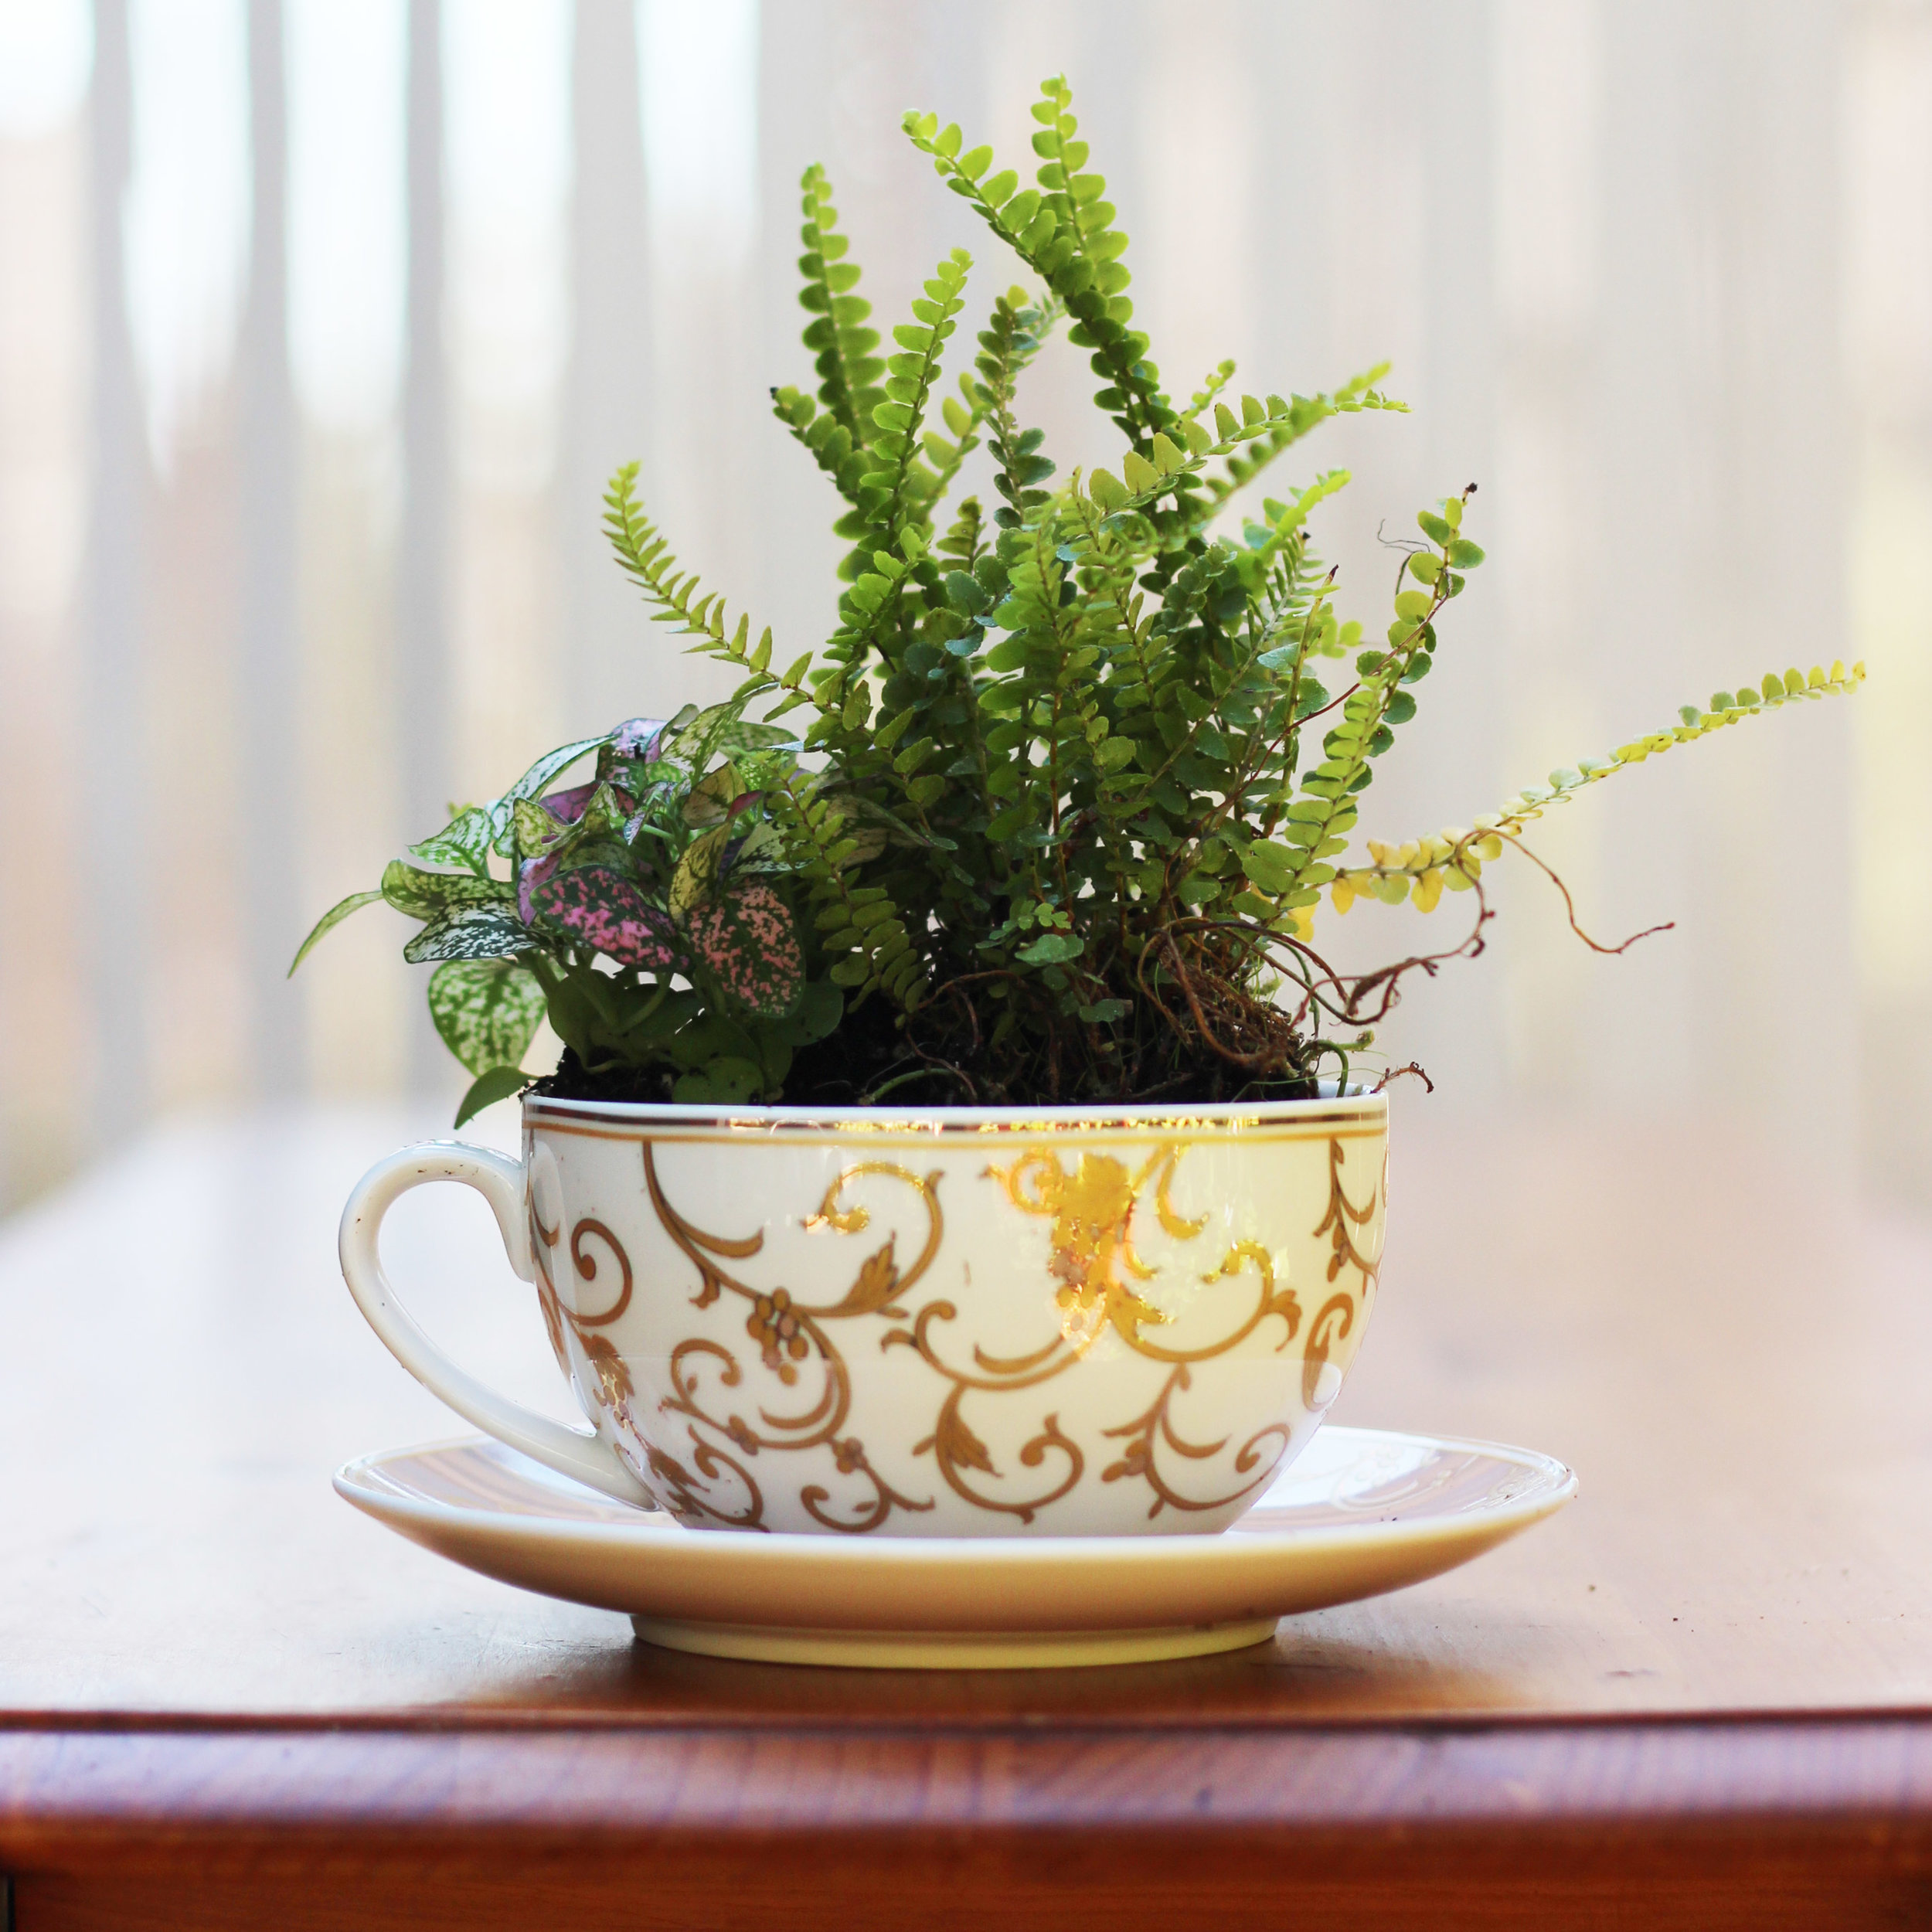 Plant Polka Dot Plant in back left of the cup.